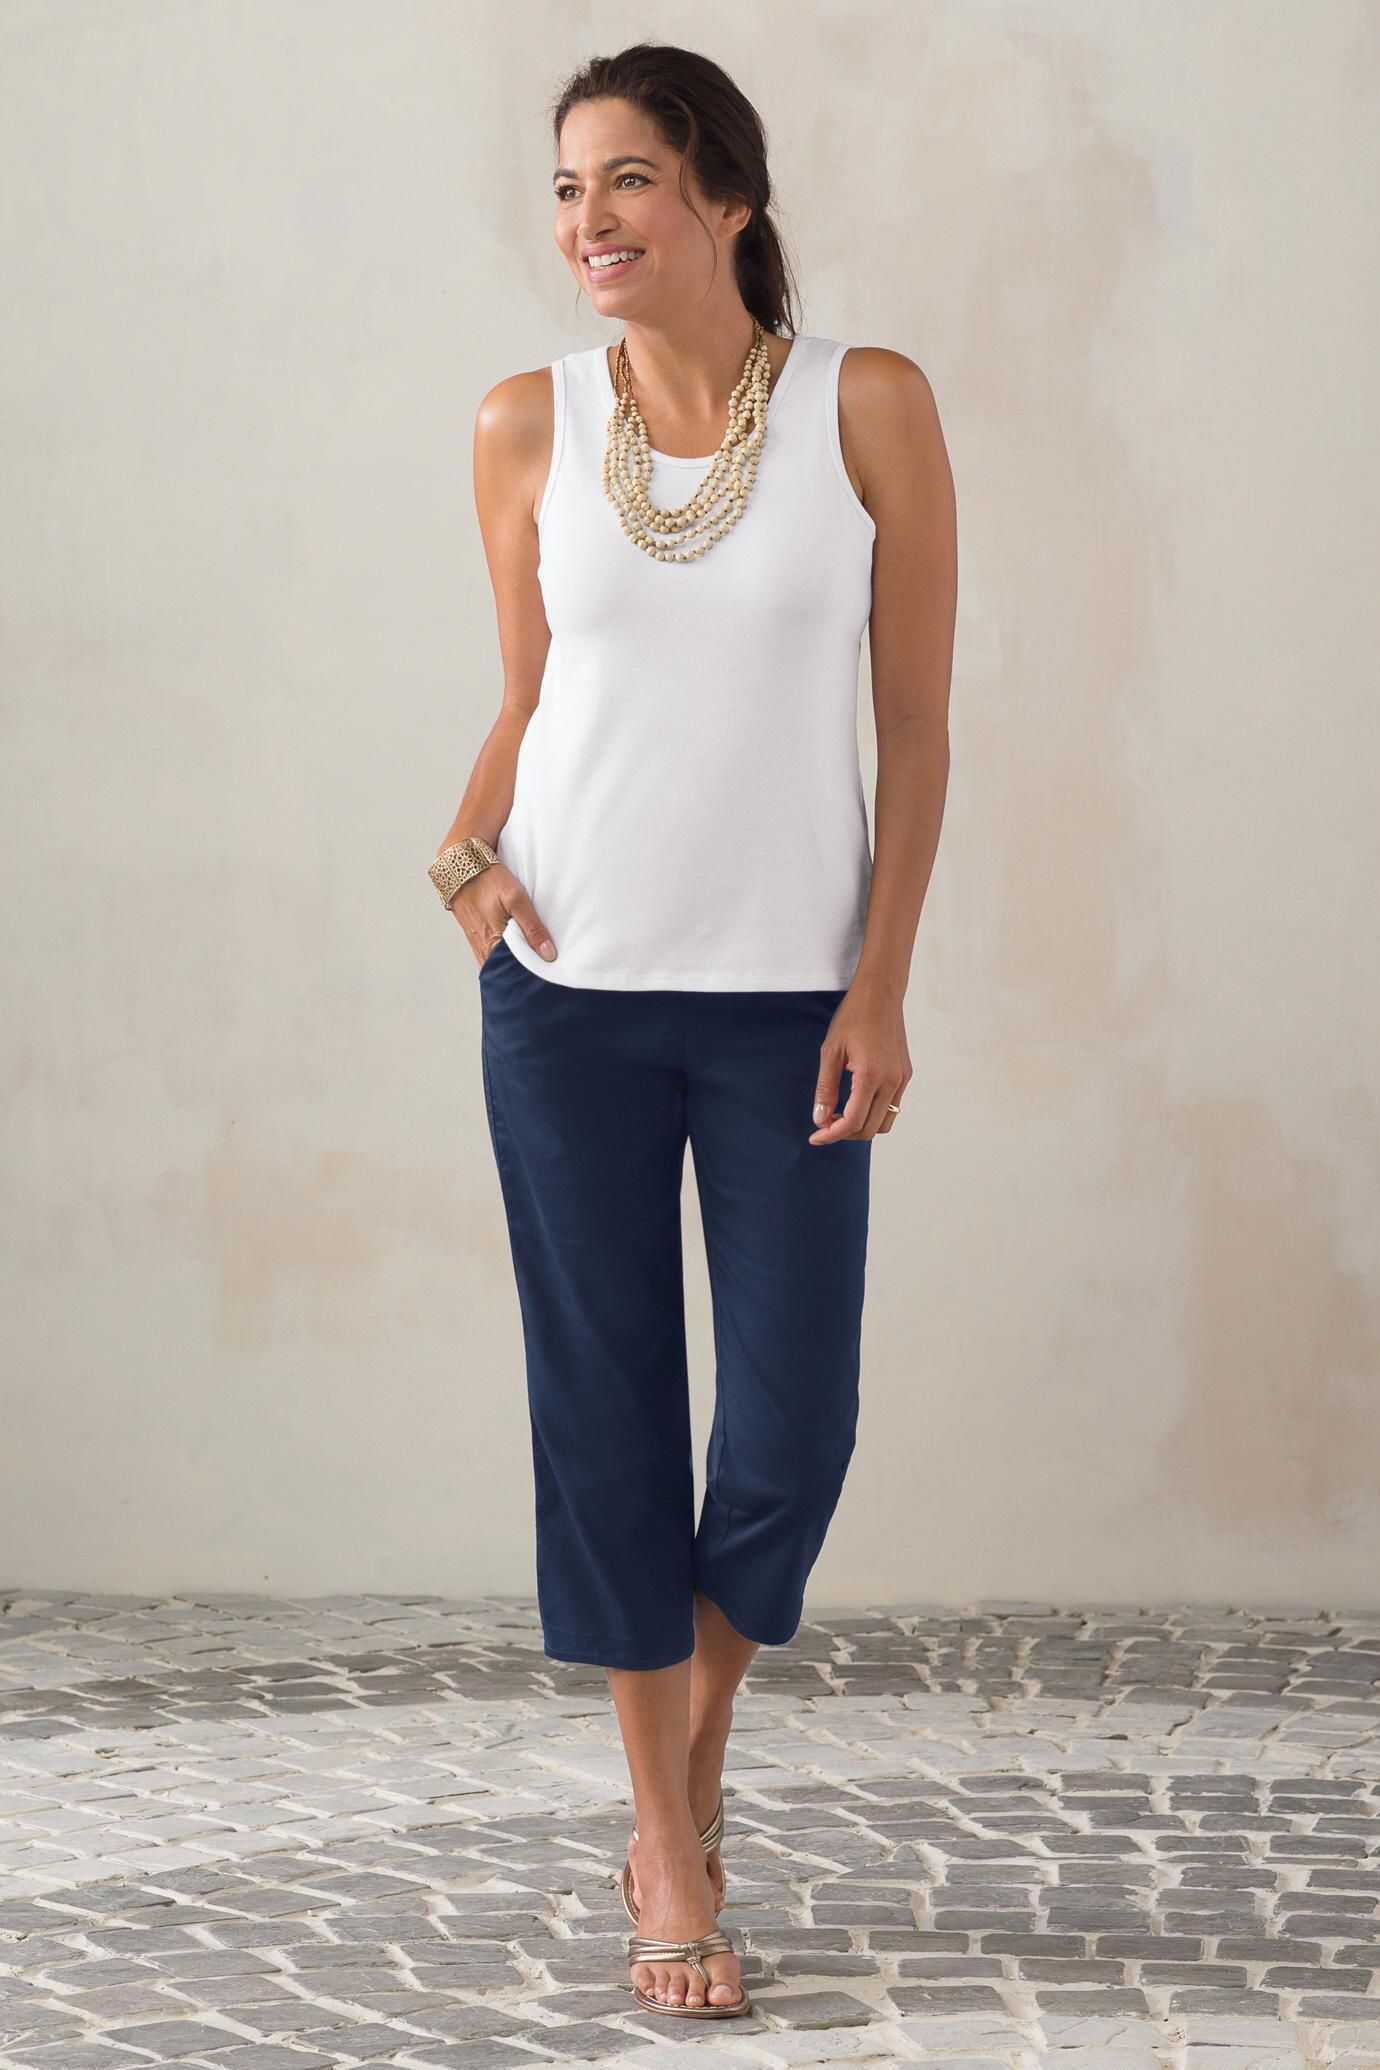 Original Fit Stretch Twill Cropped Pants: #Travelsmith $17.24 - $52.00